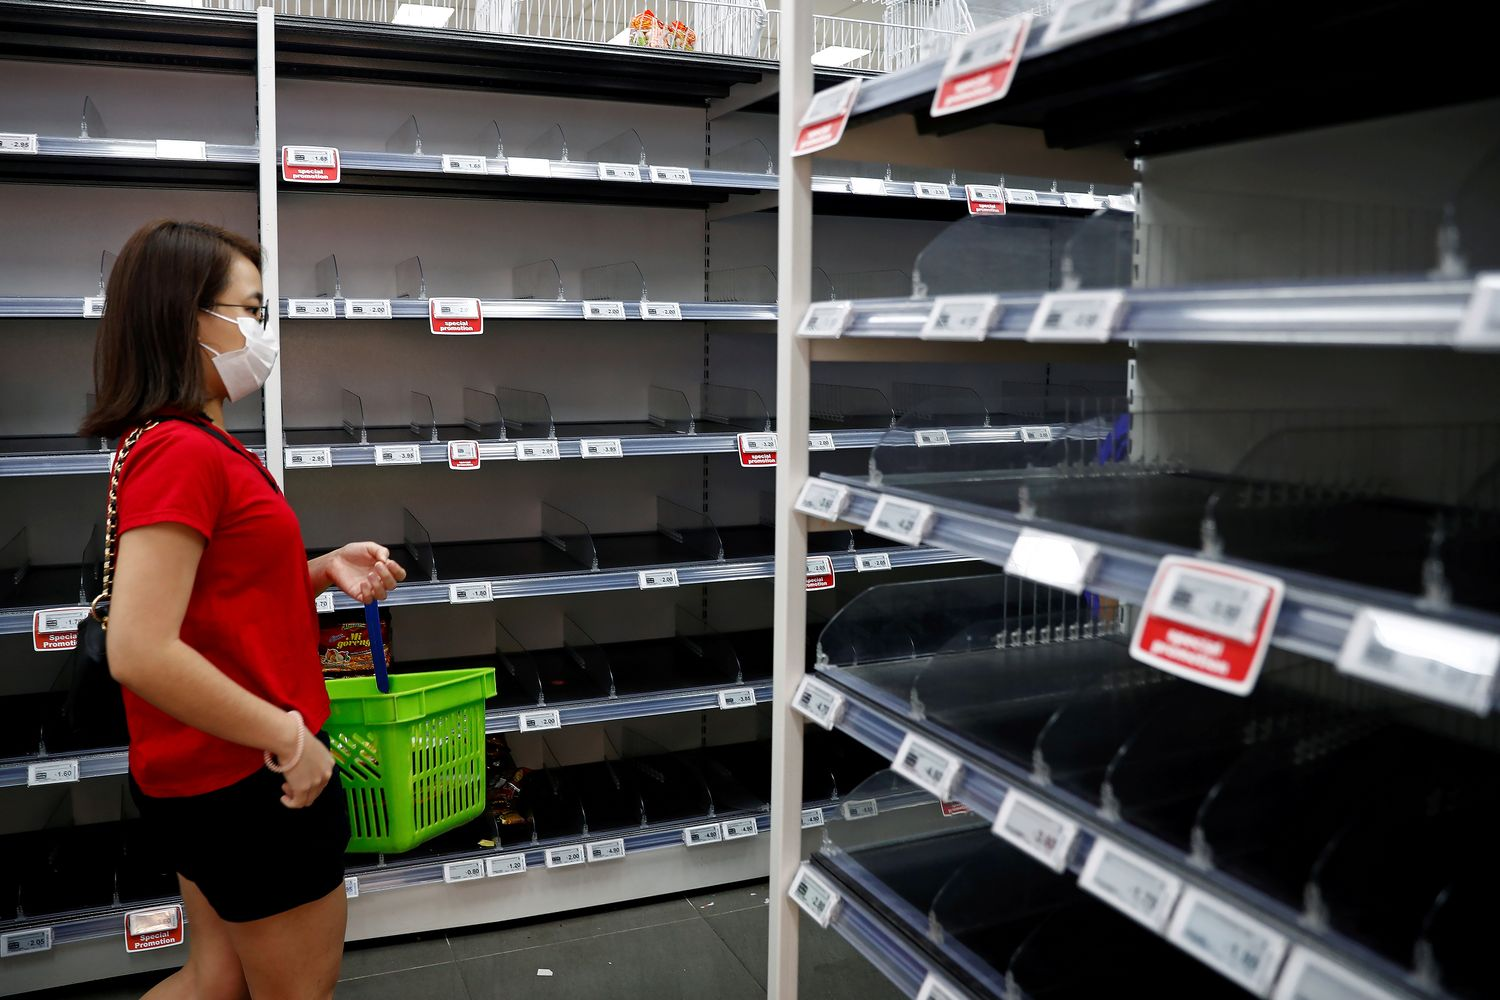 A woman wearing a protective mask passes empty shelves of instant noodles and canned food, as people stock up on food supplies after Singapore raised coronavirus outbreak alert level to orange, at a supermarket in Singapore on Saturday. (Reuters photo)